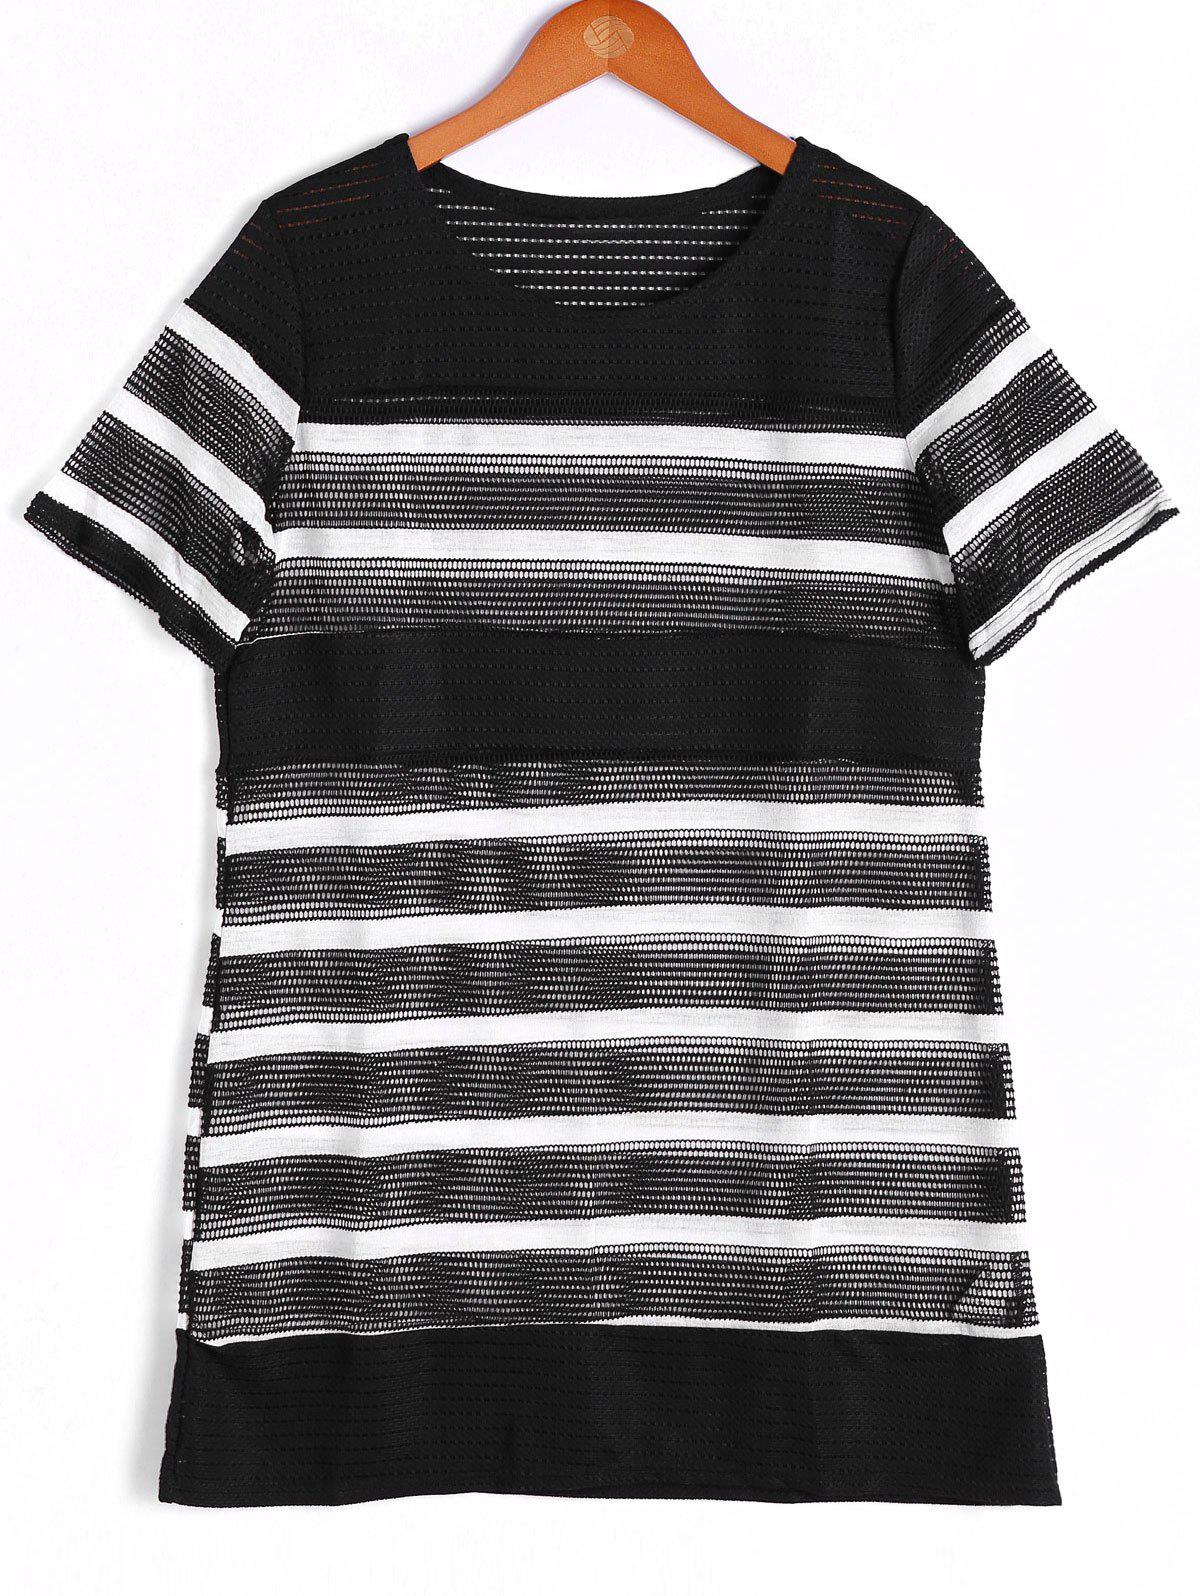 Fashionable Stripe Short Sleeve Round Neck Top For Women - WHITE/BLACK ONE SIZE(FIT SIZE XS TO M)